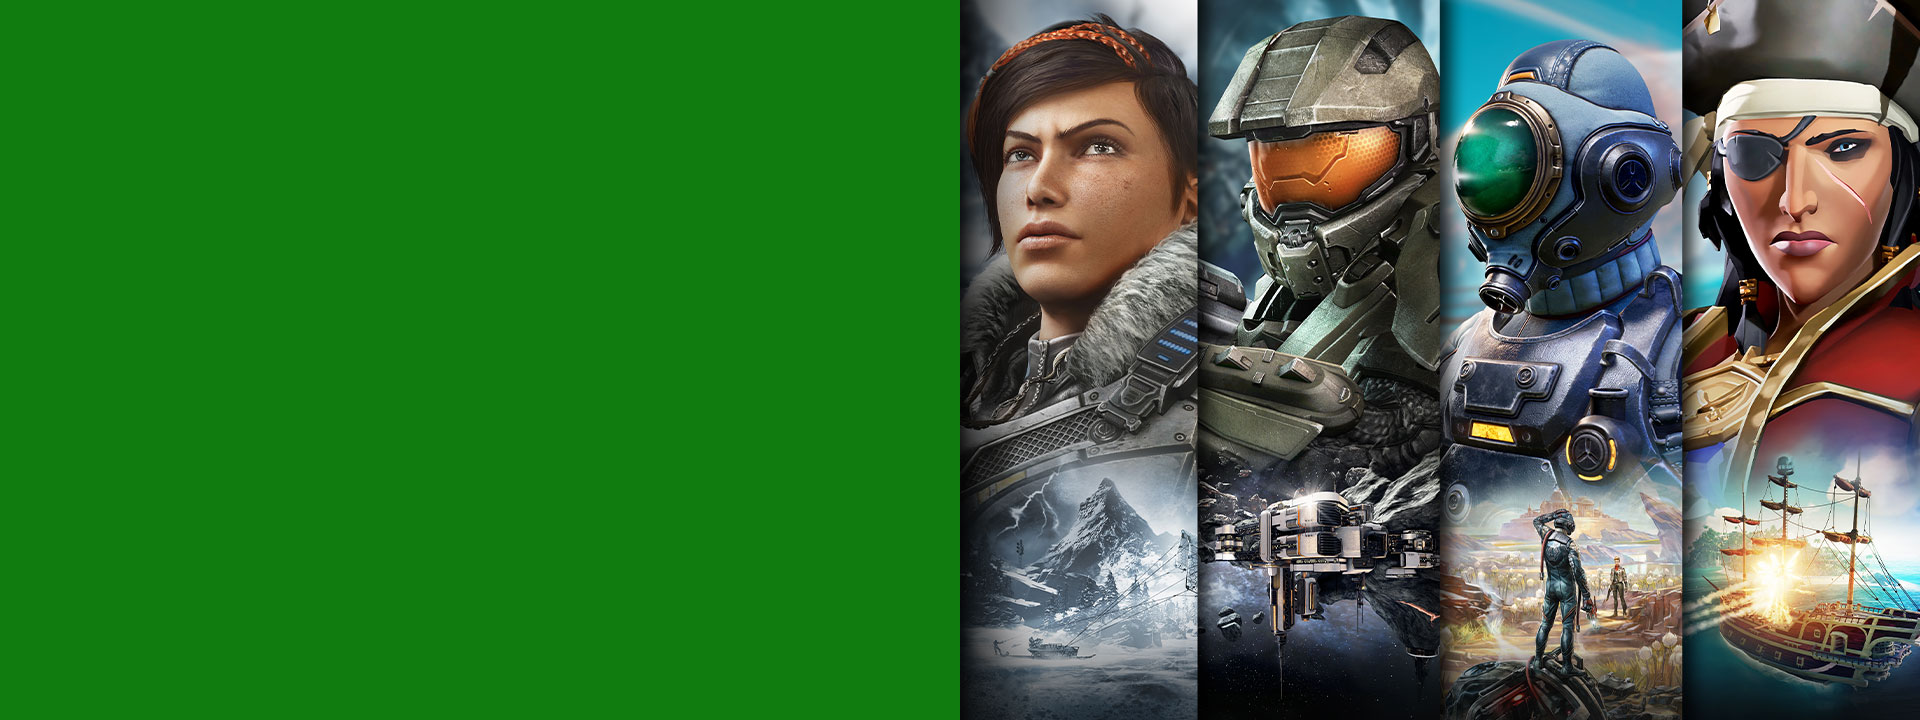 Personnages de Gears 5, Halo, The Outer Worlds et Sea of Thieves de l'offre Xbox Game Pass.